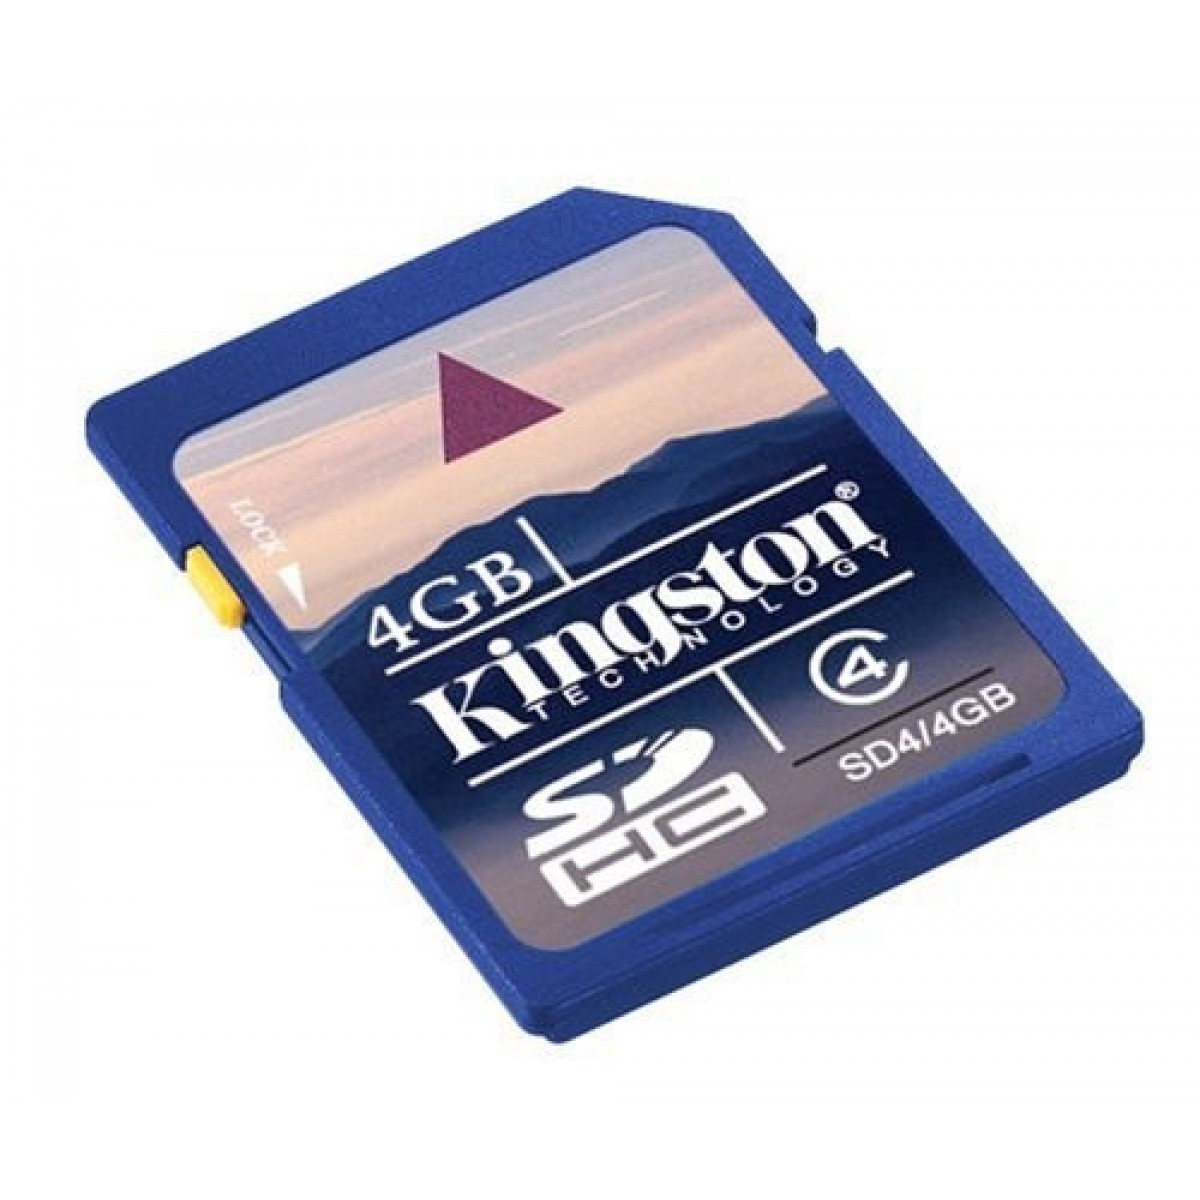 Kingston Secure Digital High Capacity, 4GB Class 4